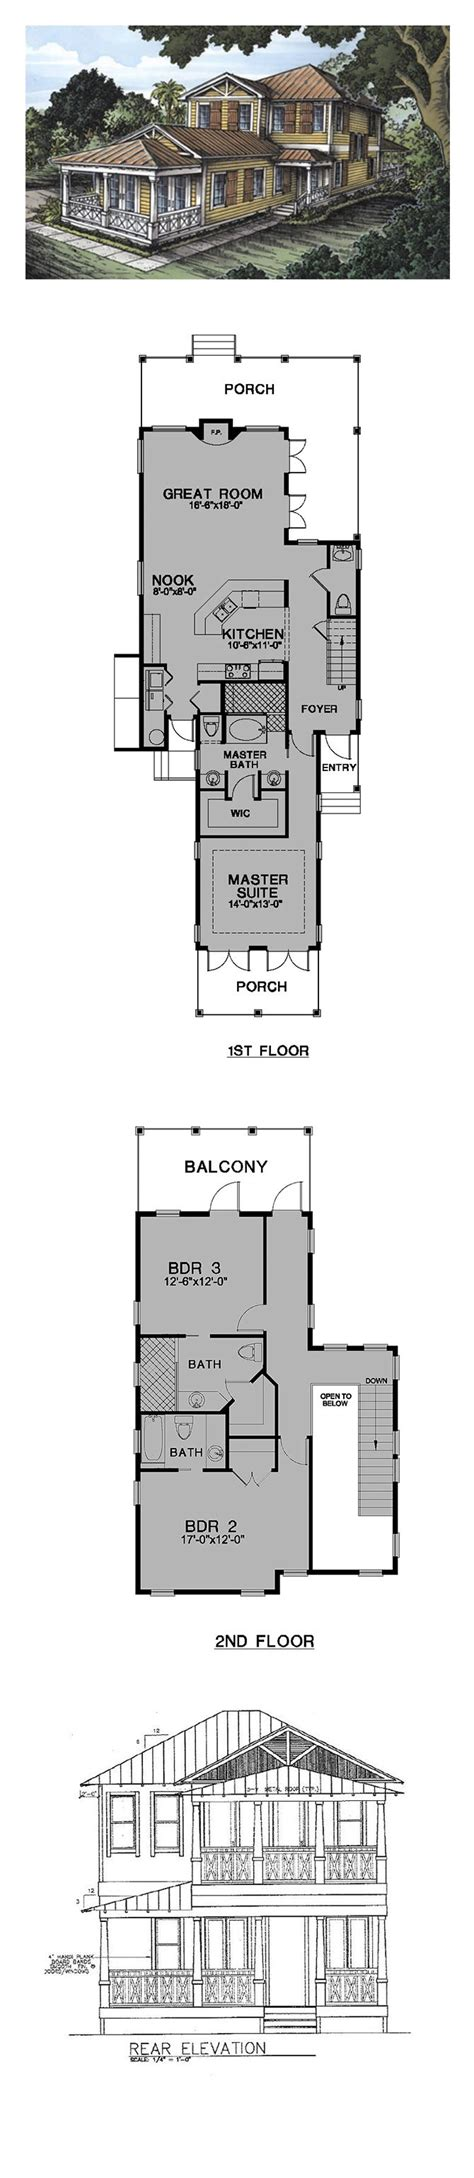 cool floor plans house plans cool houseplans ranch house plans with